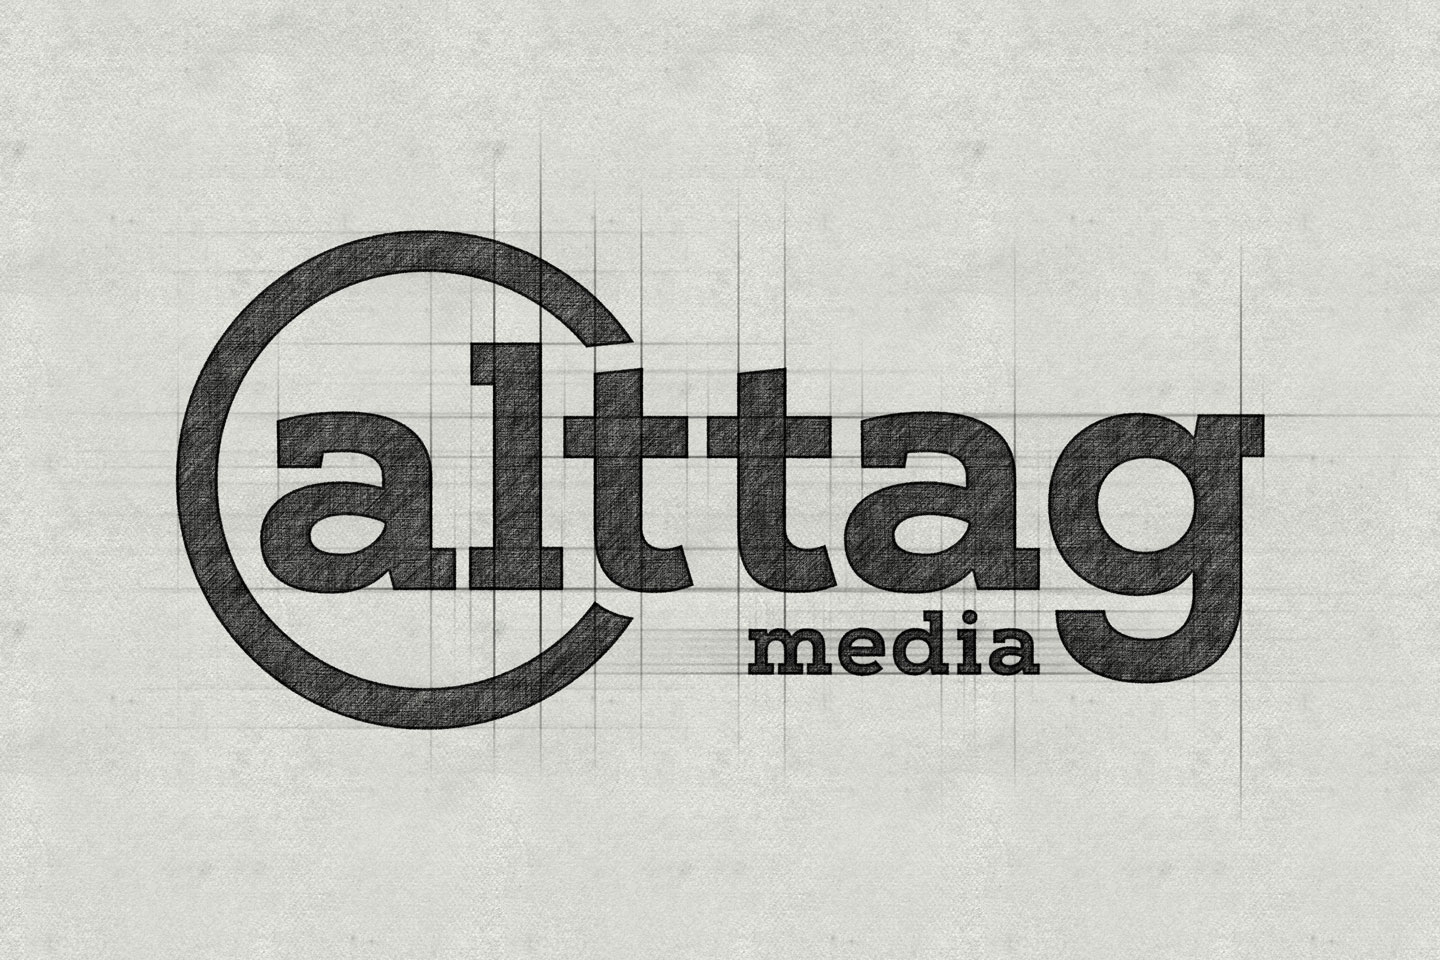 alttag media logo sketch